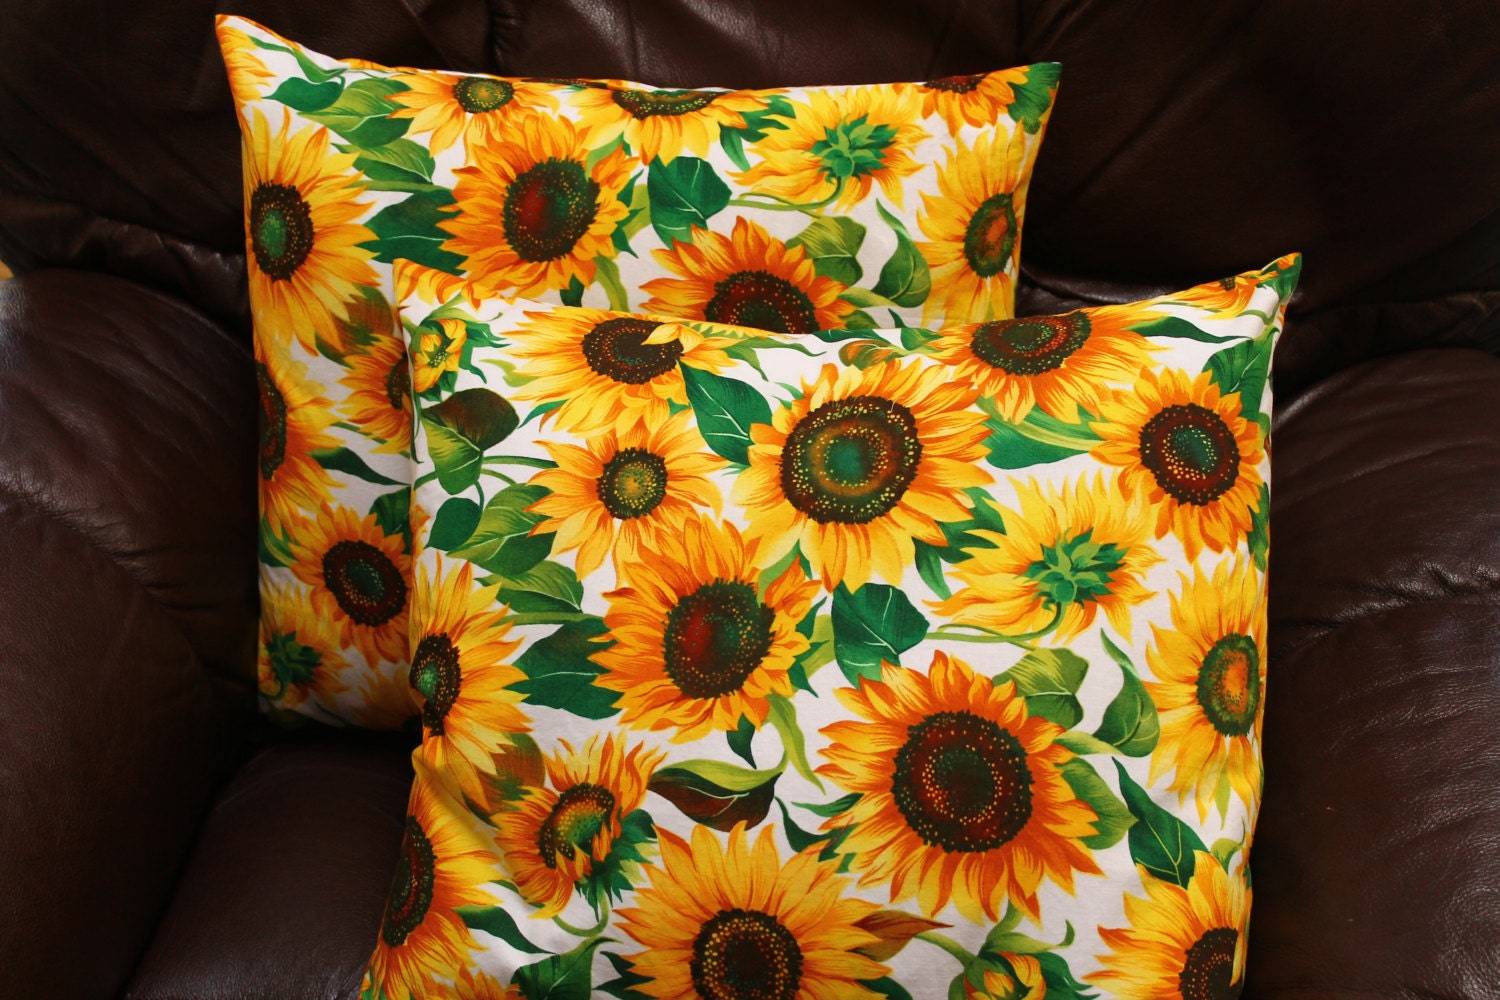 Decorative Pillows With Sunflowers : Fall Pillow Cover Sunflowers Home Decor Throw Pillows